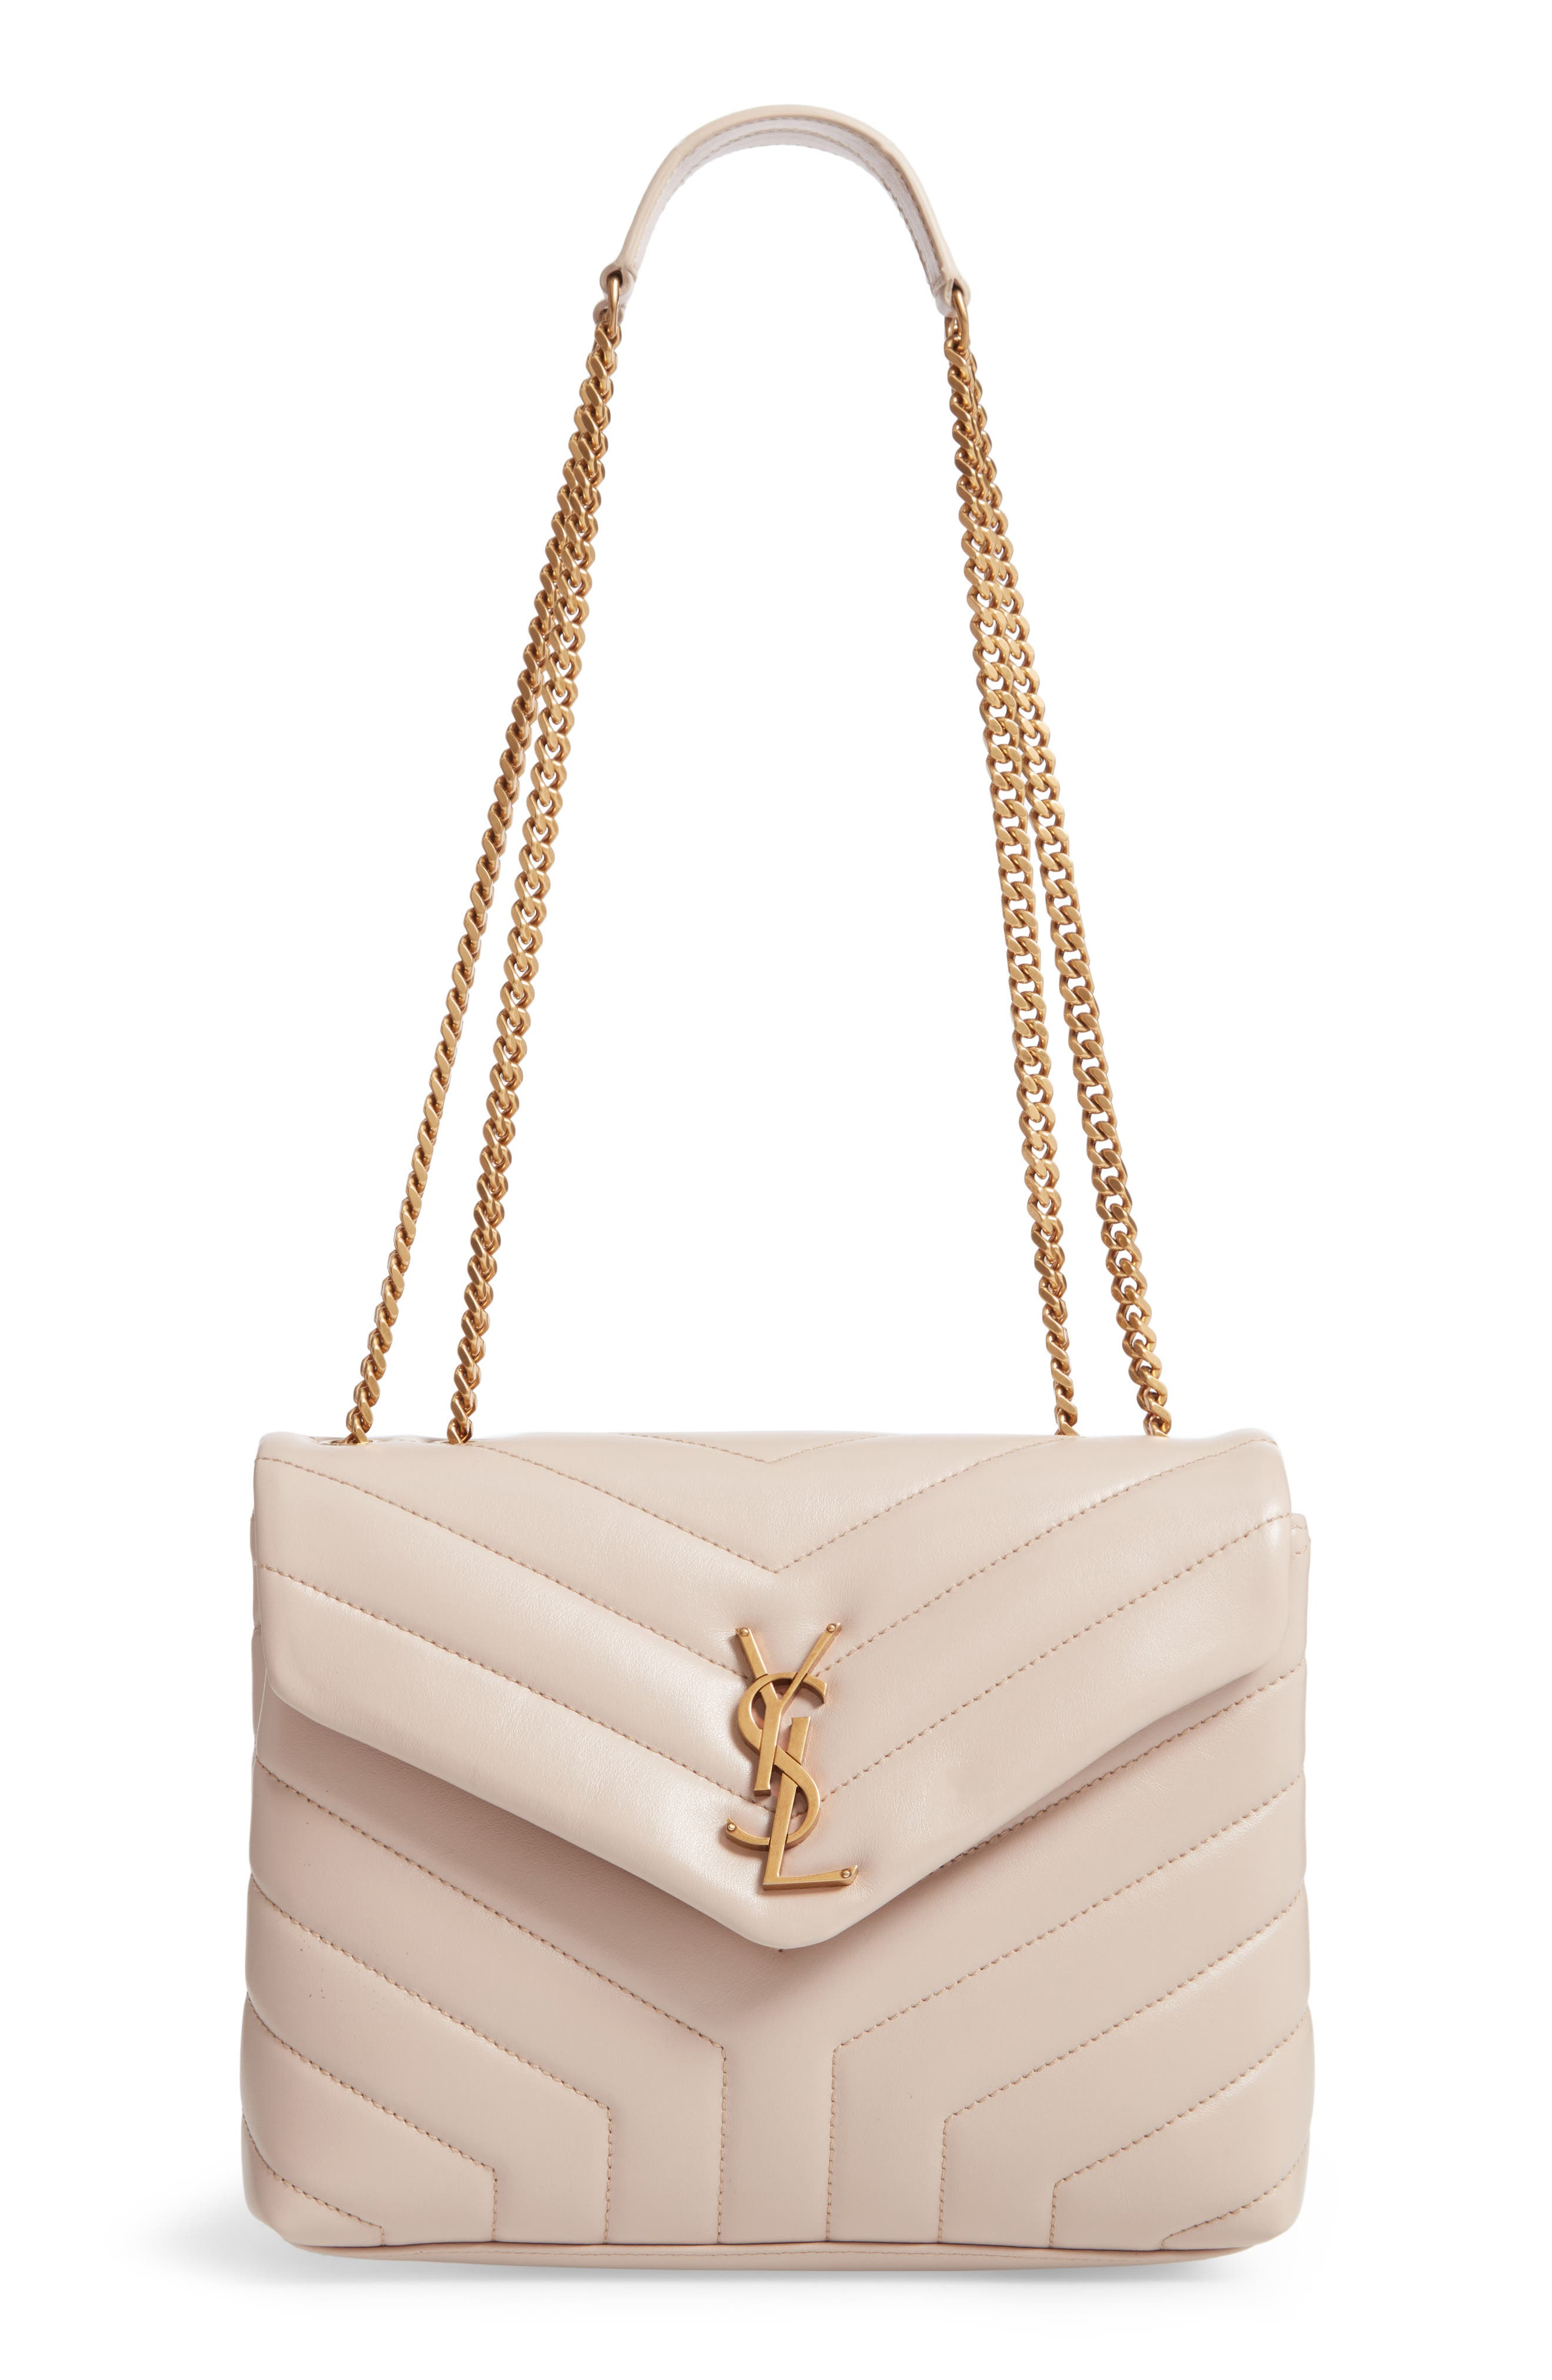 SAINT LAURENT Small Loulou Leather Shoulder Bag, Main, color, LIGHT NATURAL